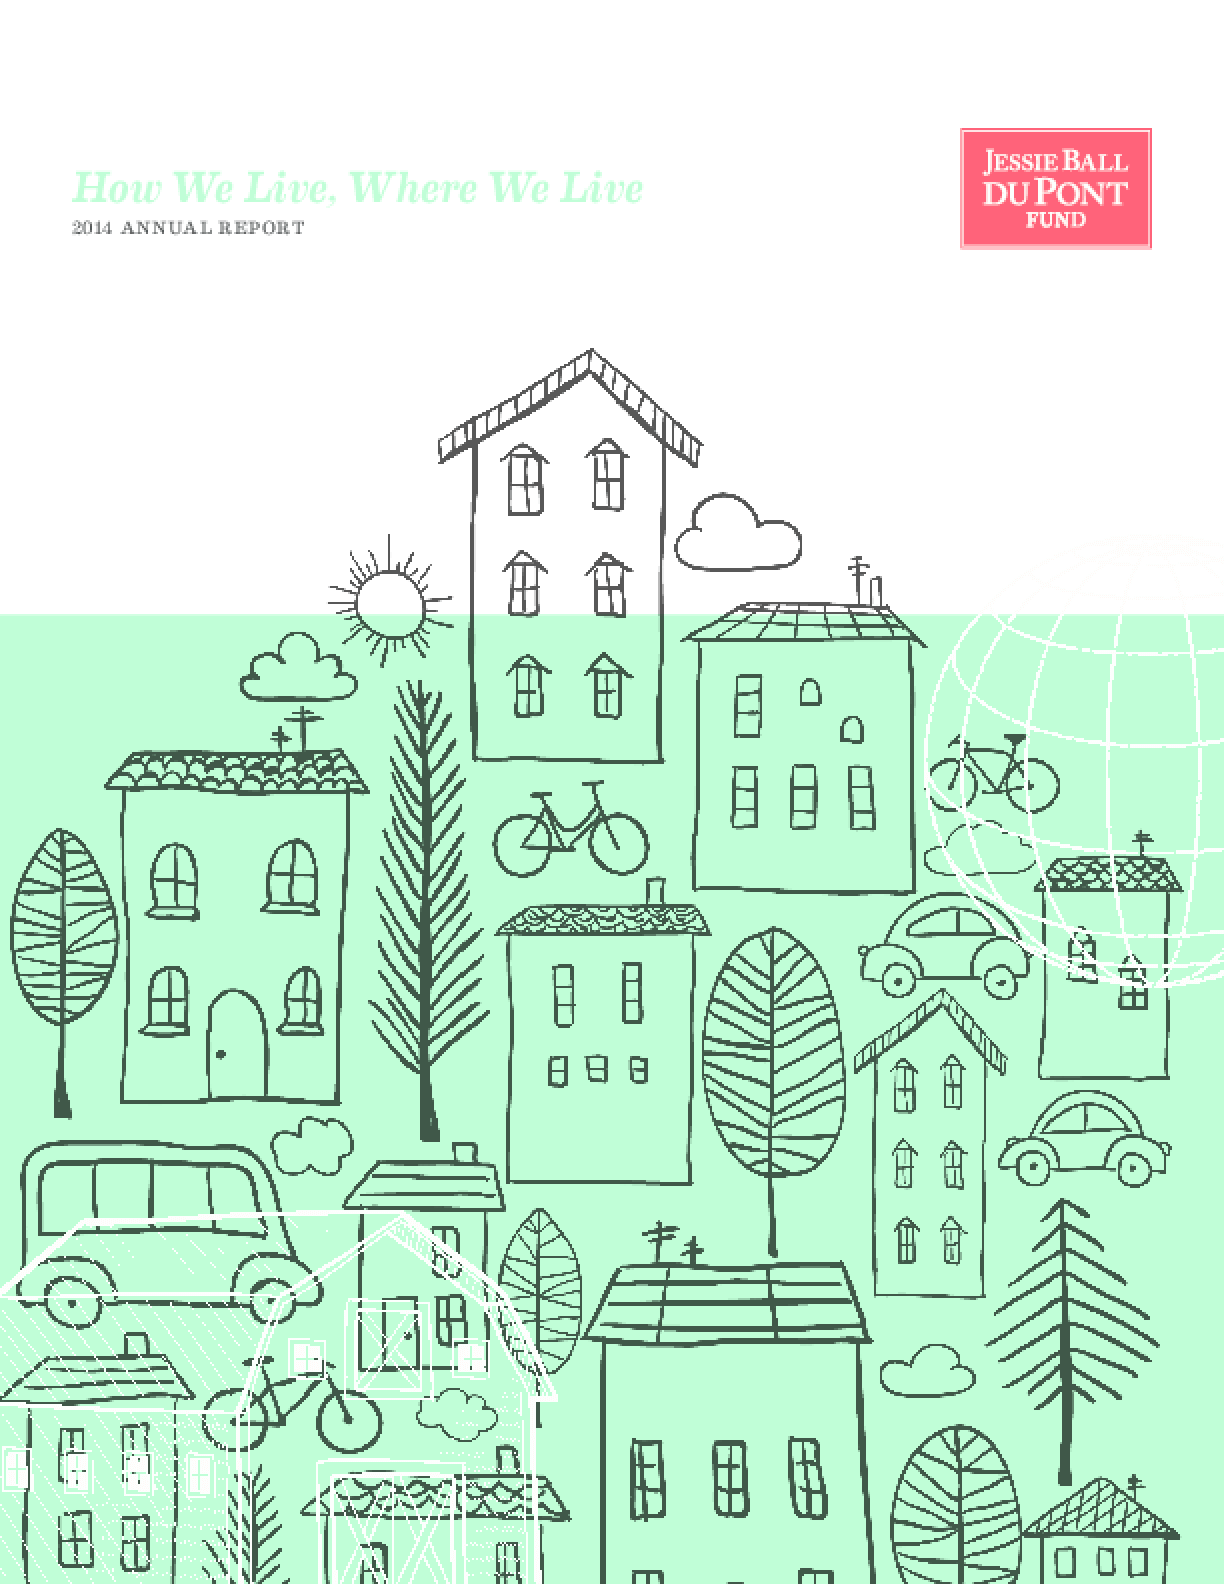 How We Live, Where We Live: Jessie Ball duPont Fund 2014 Annual Report